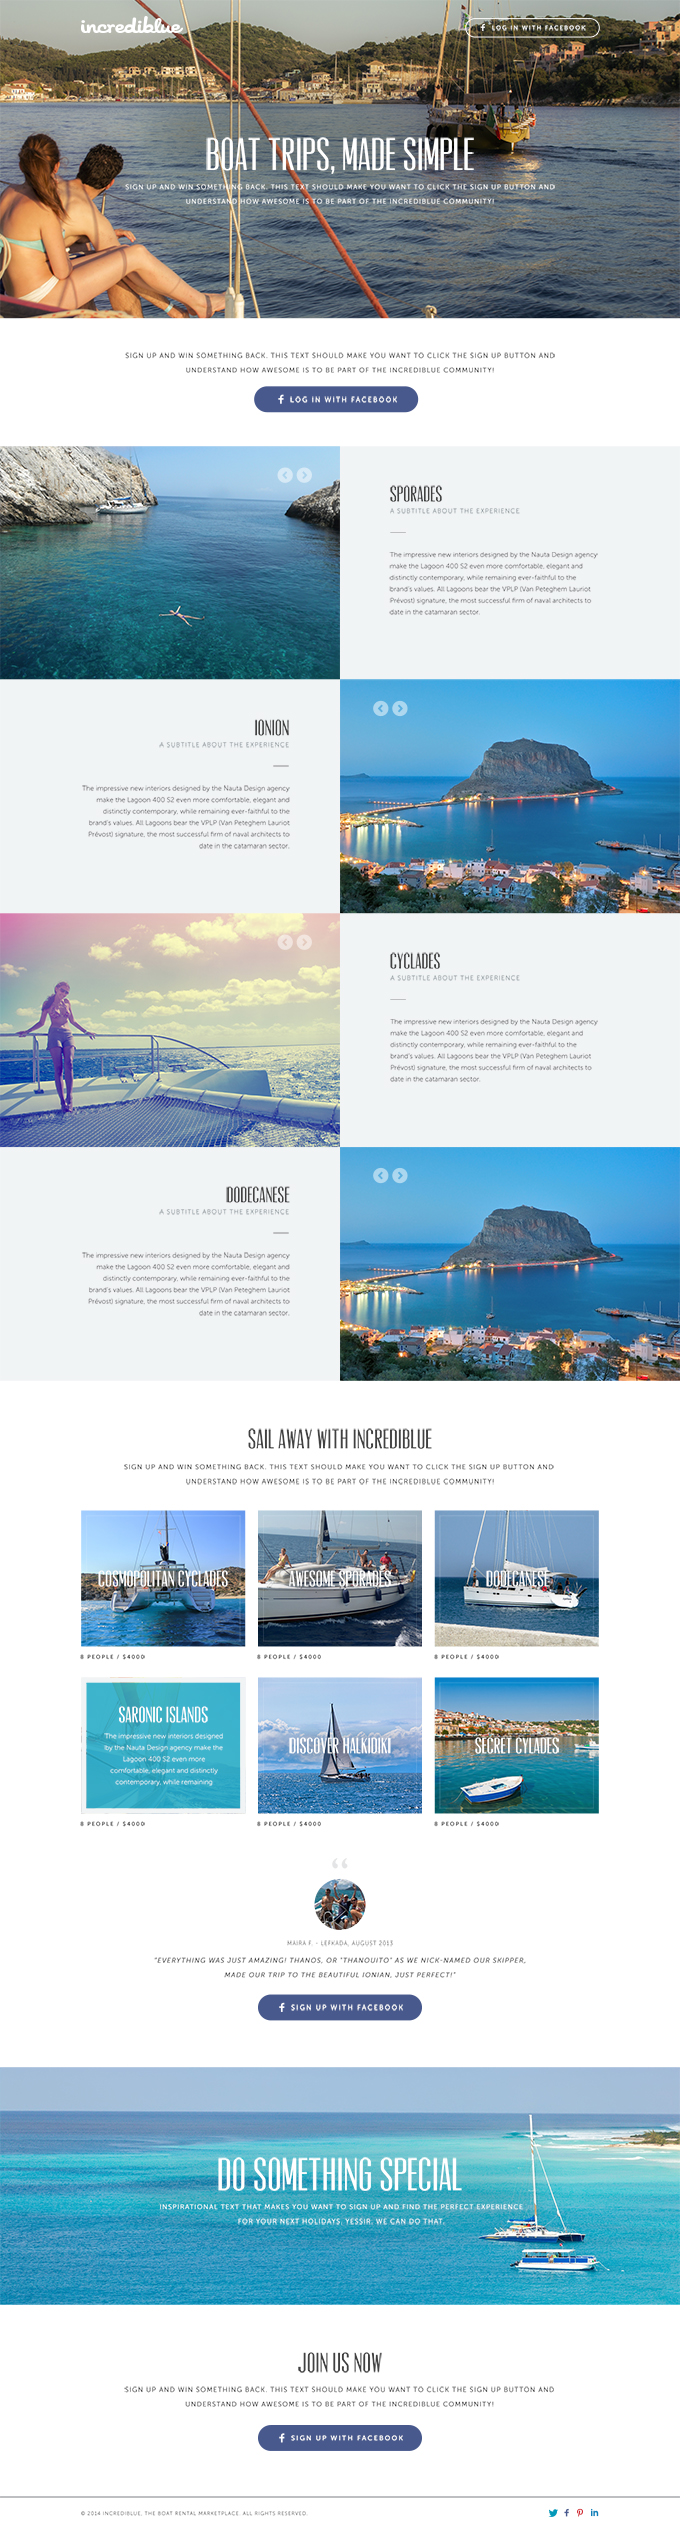 travel website landing page psd template download download psd. Black Bedroom Furniture Sets. Home Design Ideas